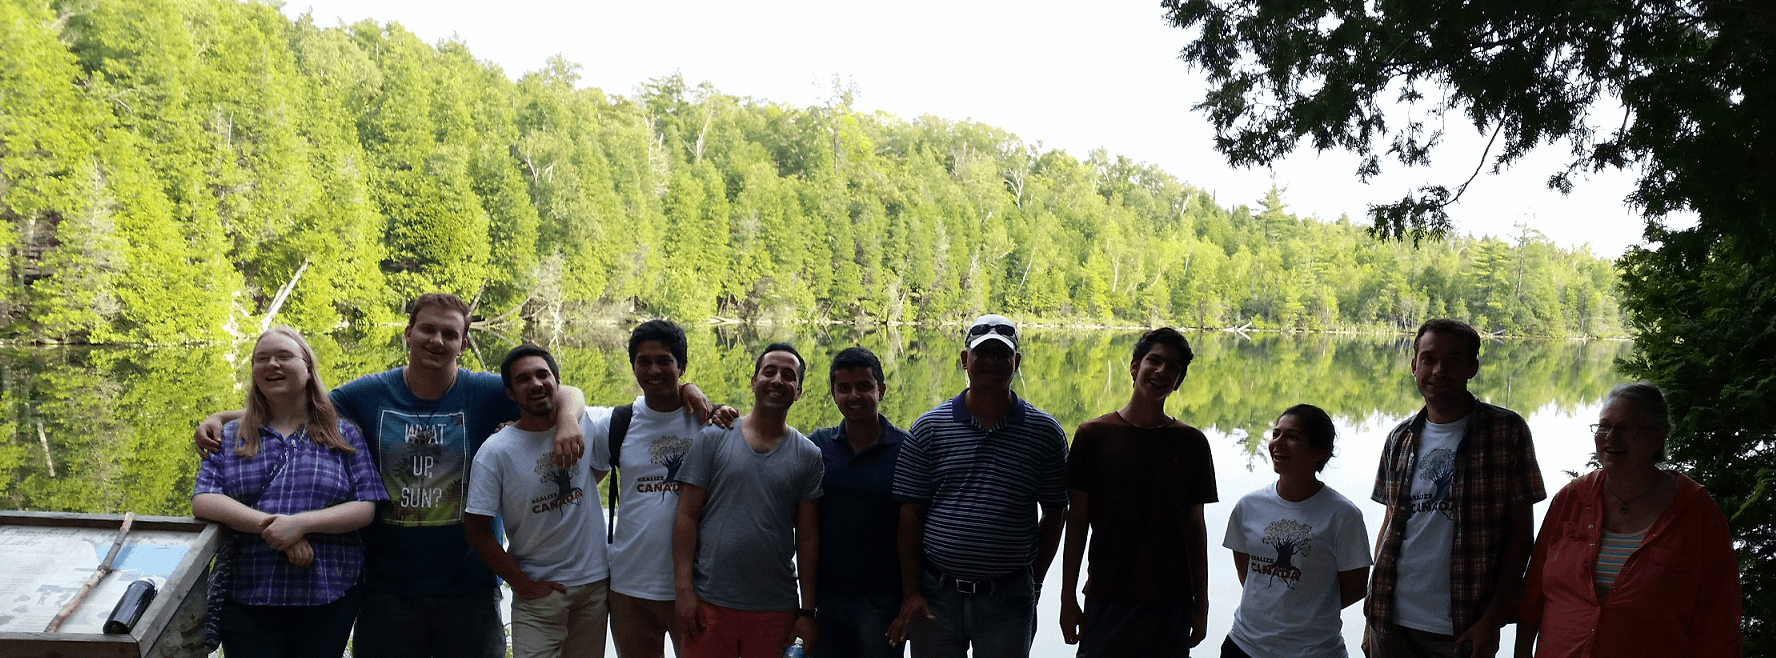 Realize Canada Tour hosted by Halton Yogis - at Crawford lake 2015- Photo by Paula